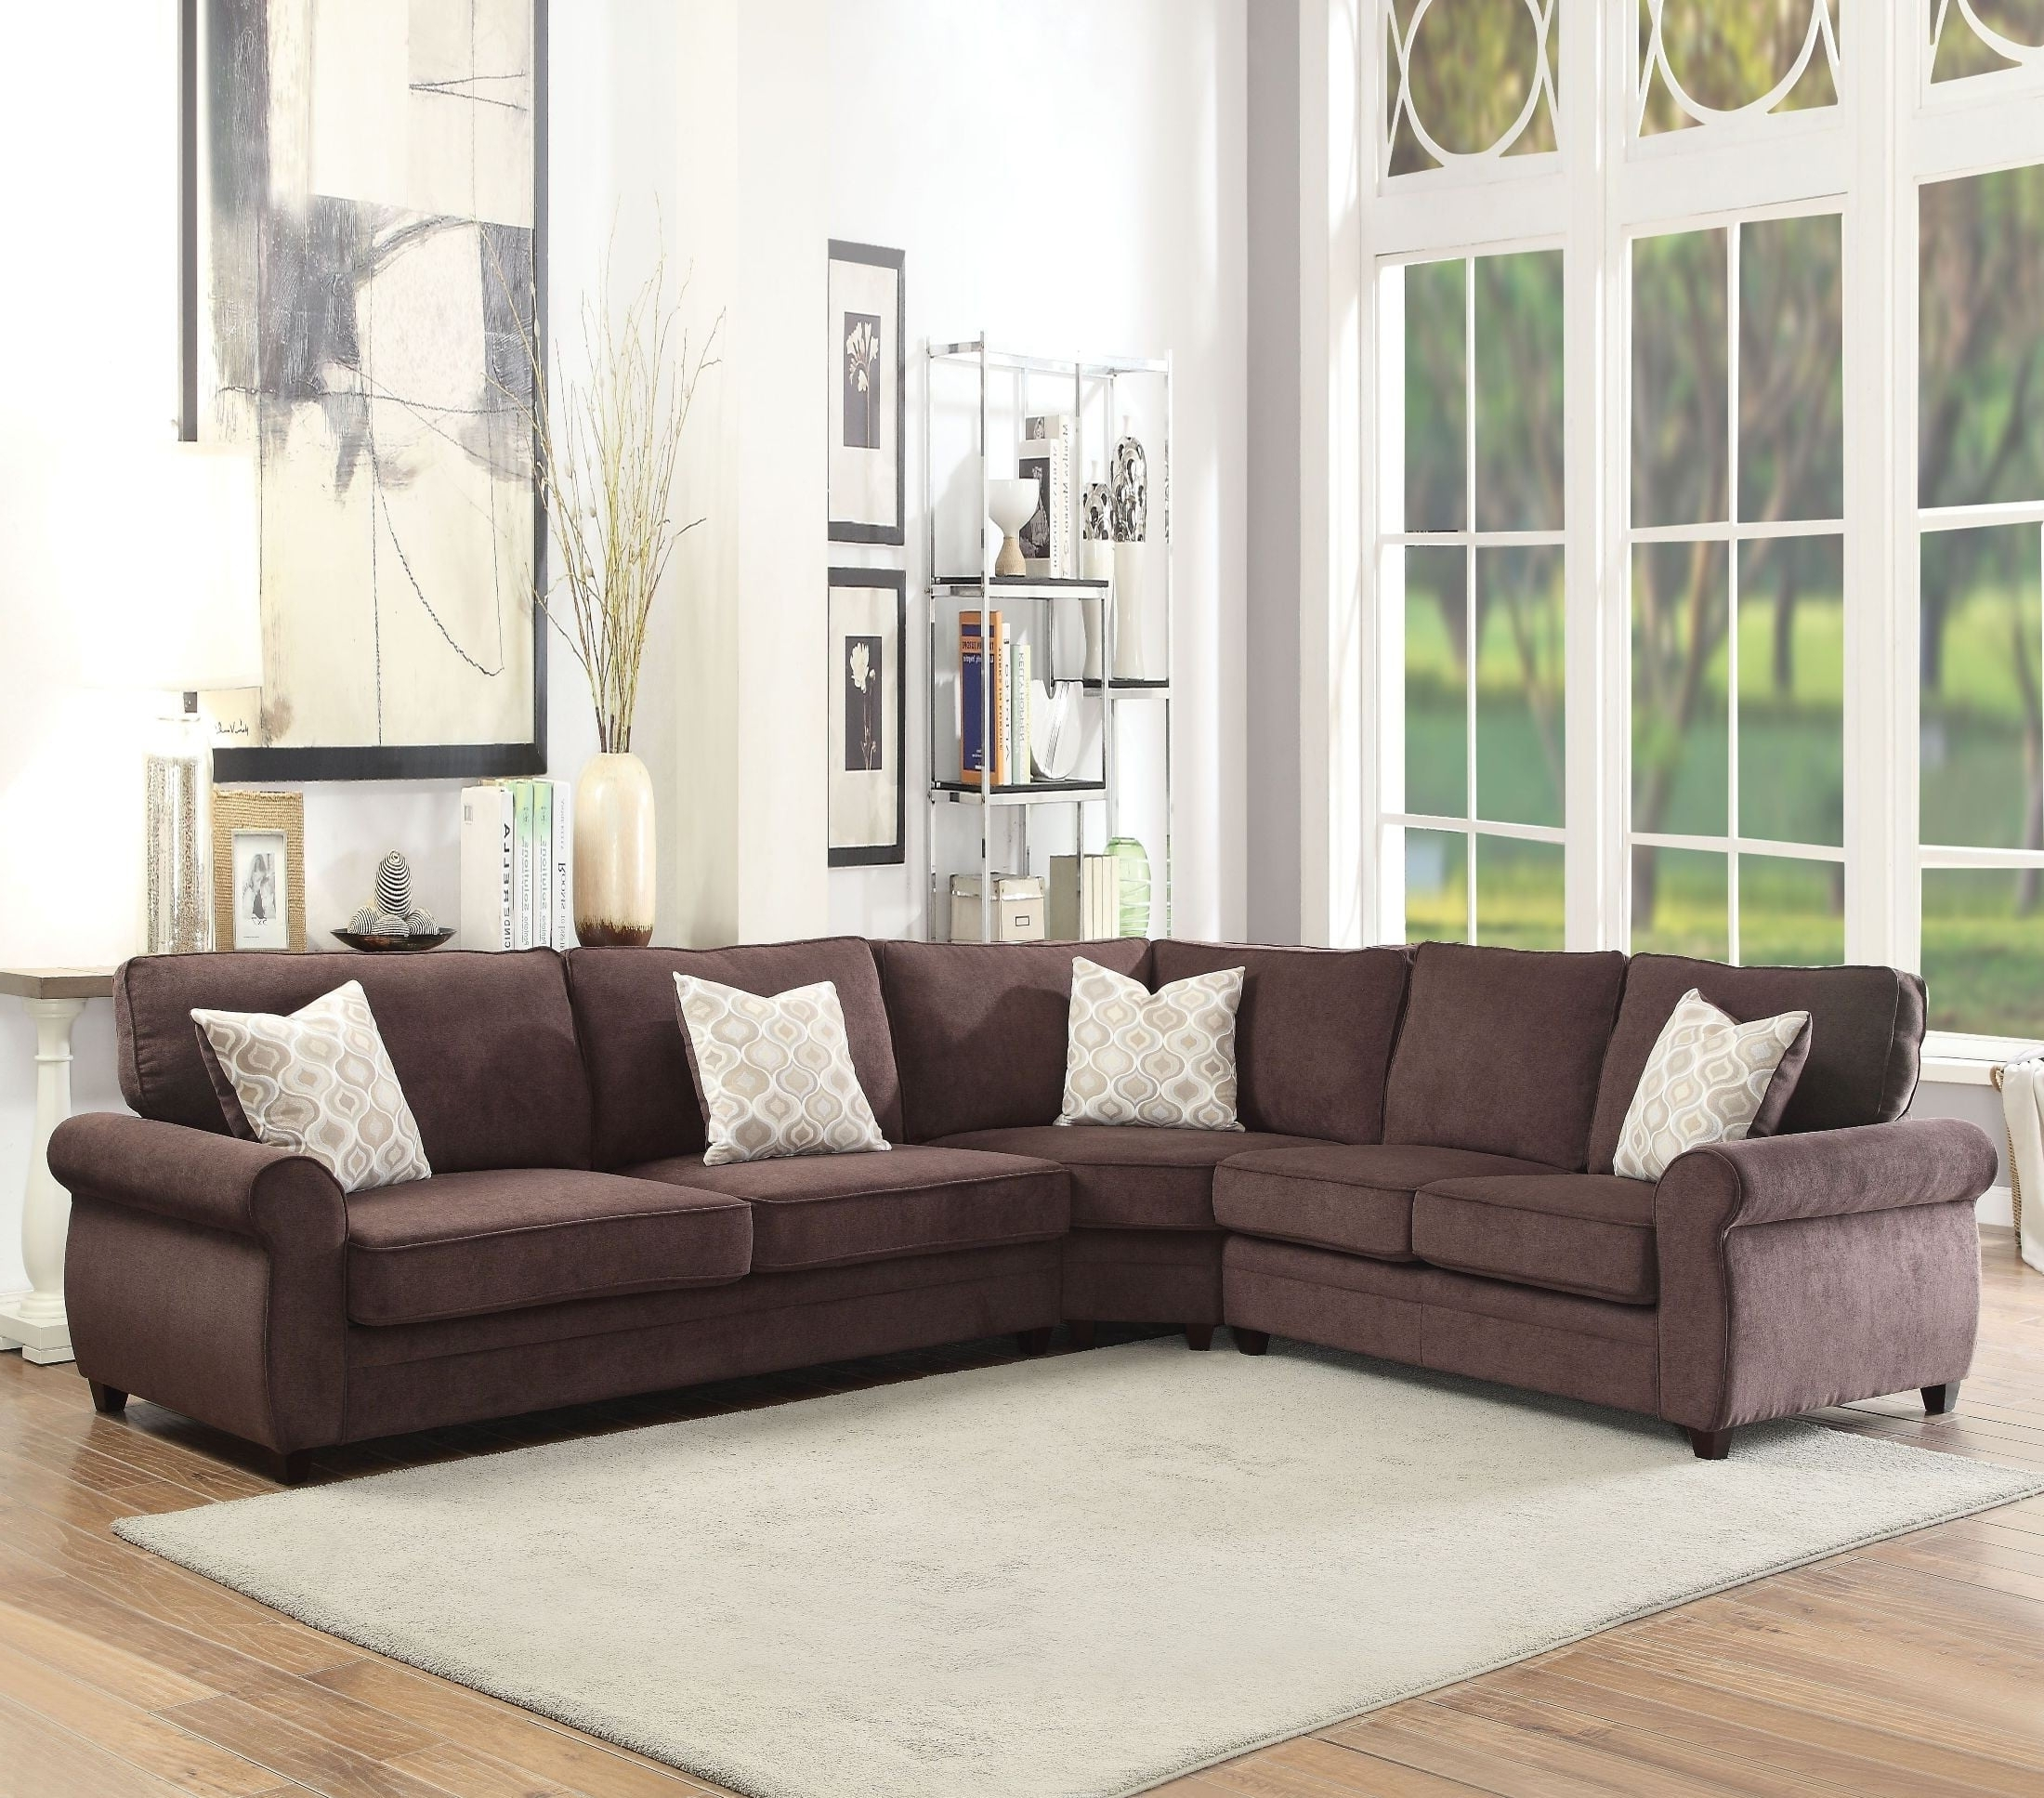 Sectional Sofas At Barrie Regarding Favorite Randolph Chocolate Chenille Sectional Sofa Sleeper From Acme (View 15 of 15)